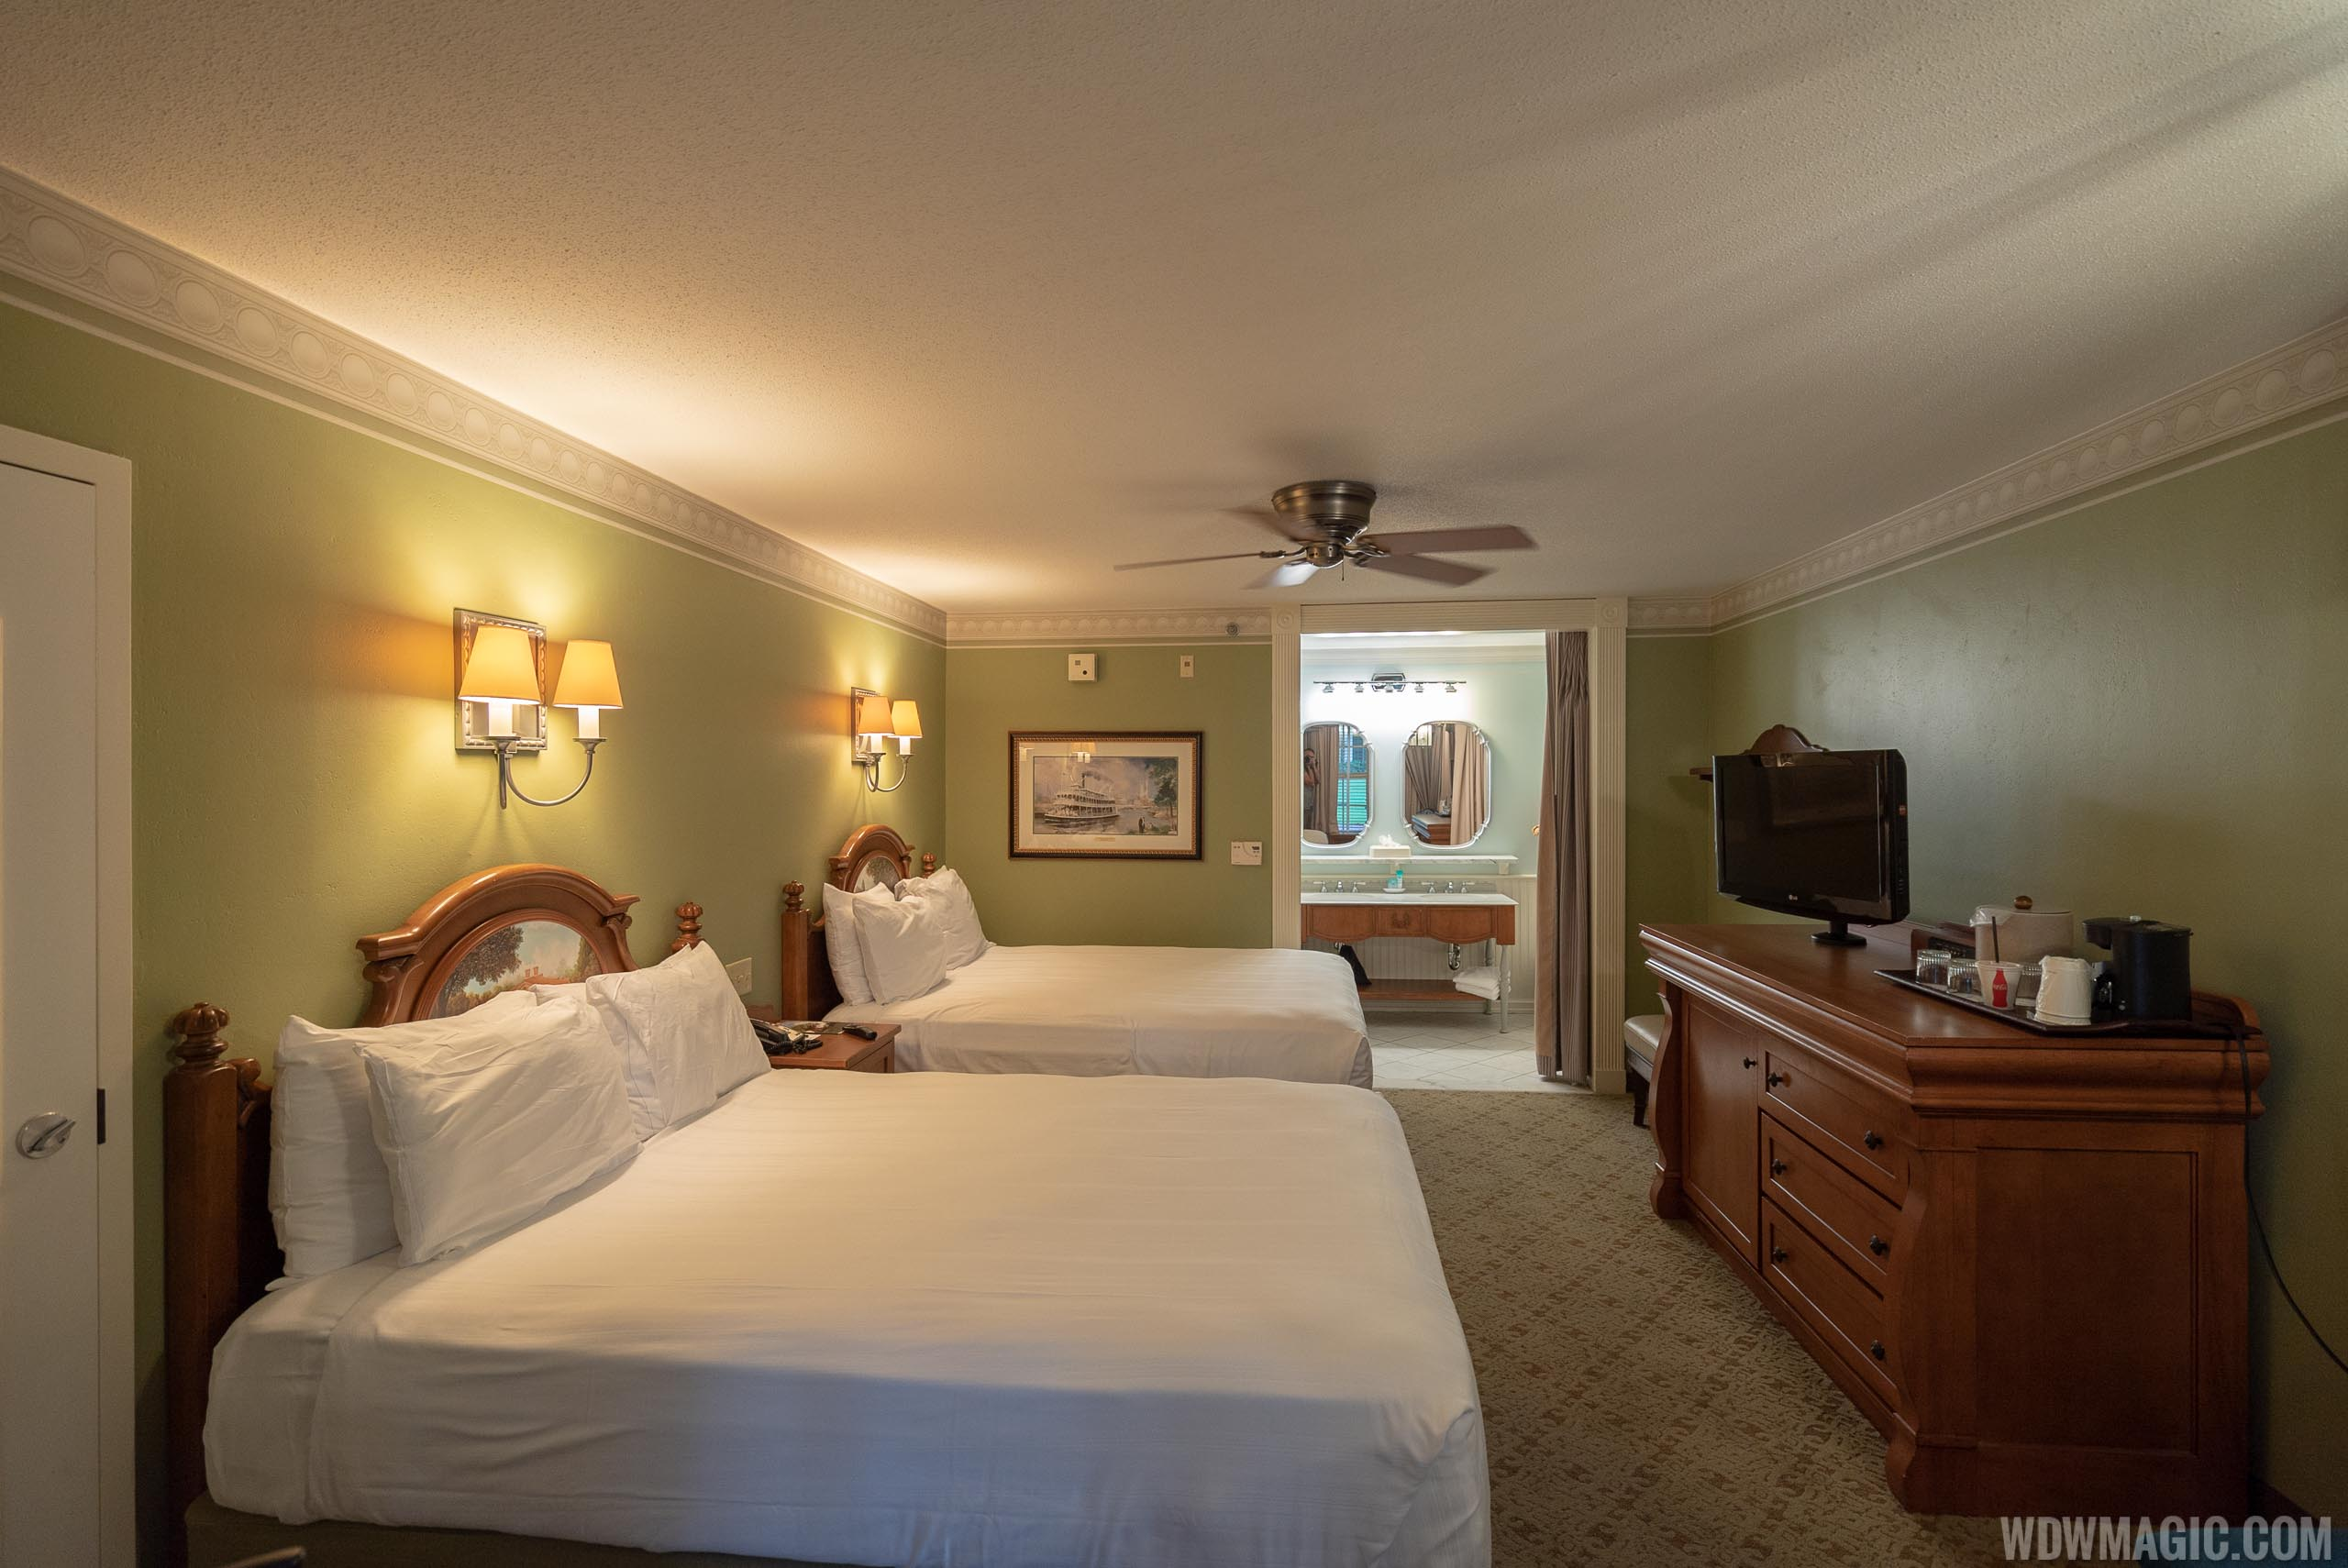 Disney's Port Orleans Resort - Riverside is one of the resorts offering Service Your Way